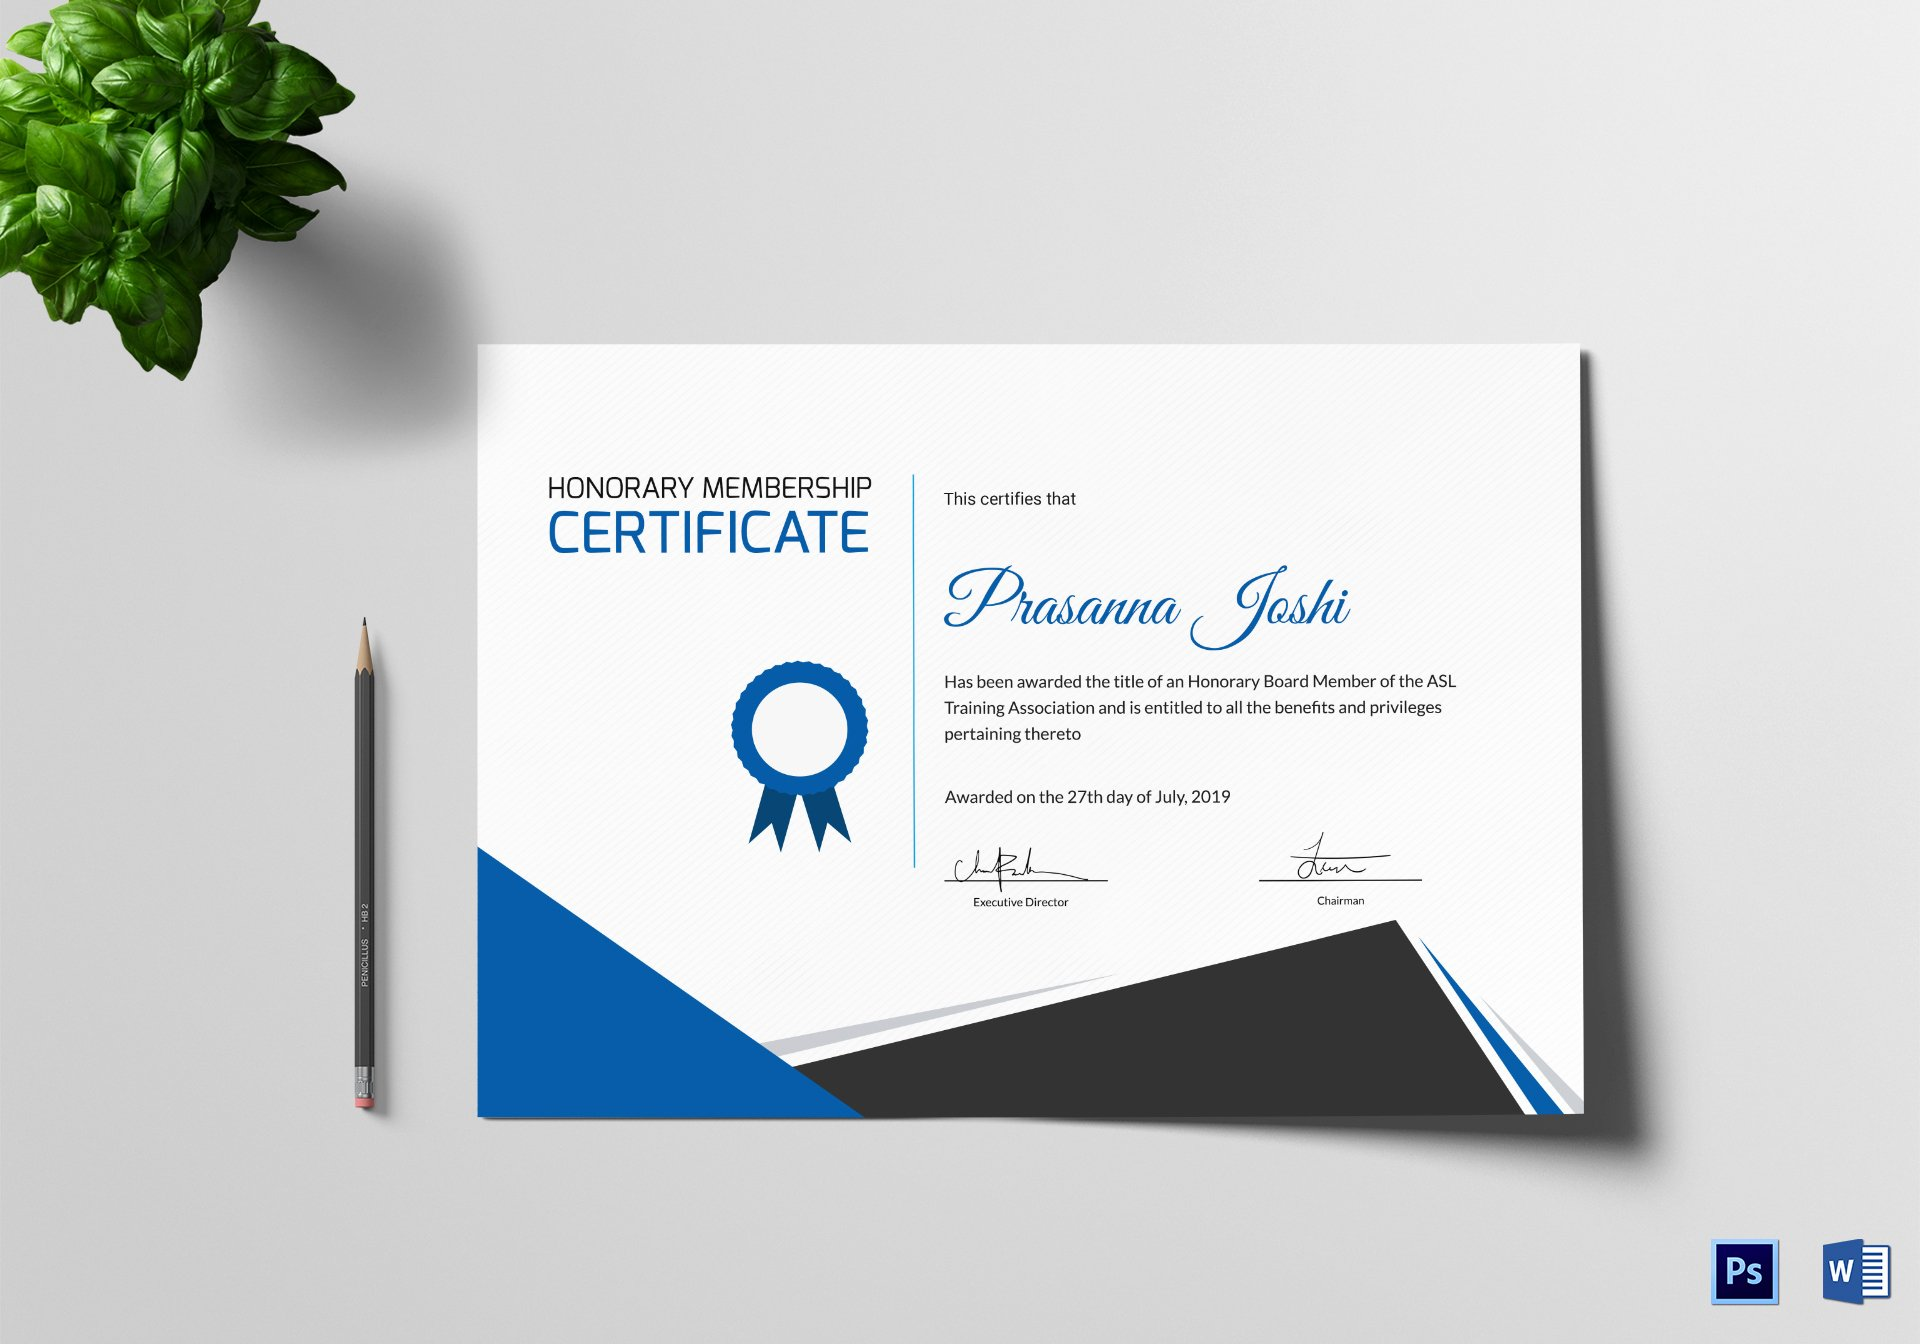 Honorary Member Certificate Template Beautiful Certificate Of Honorary Training Design Template In Psd Word